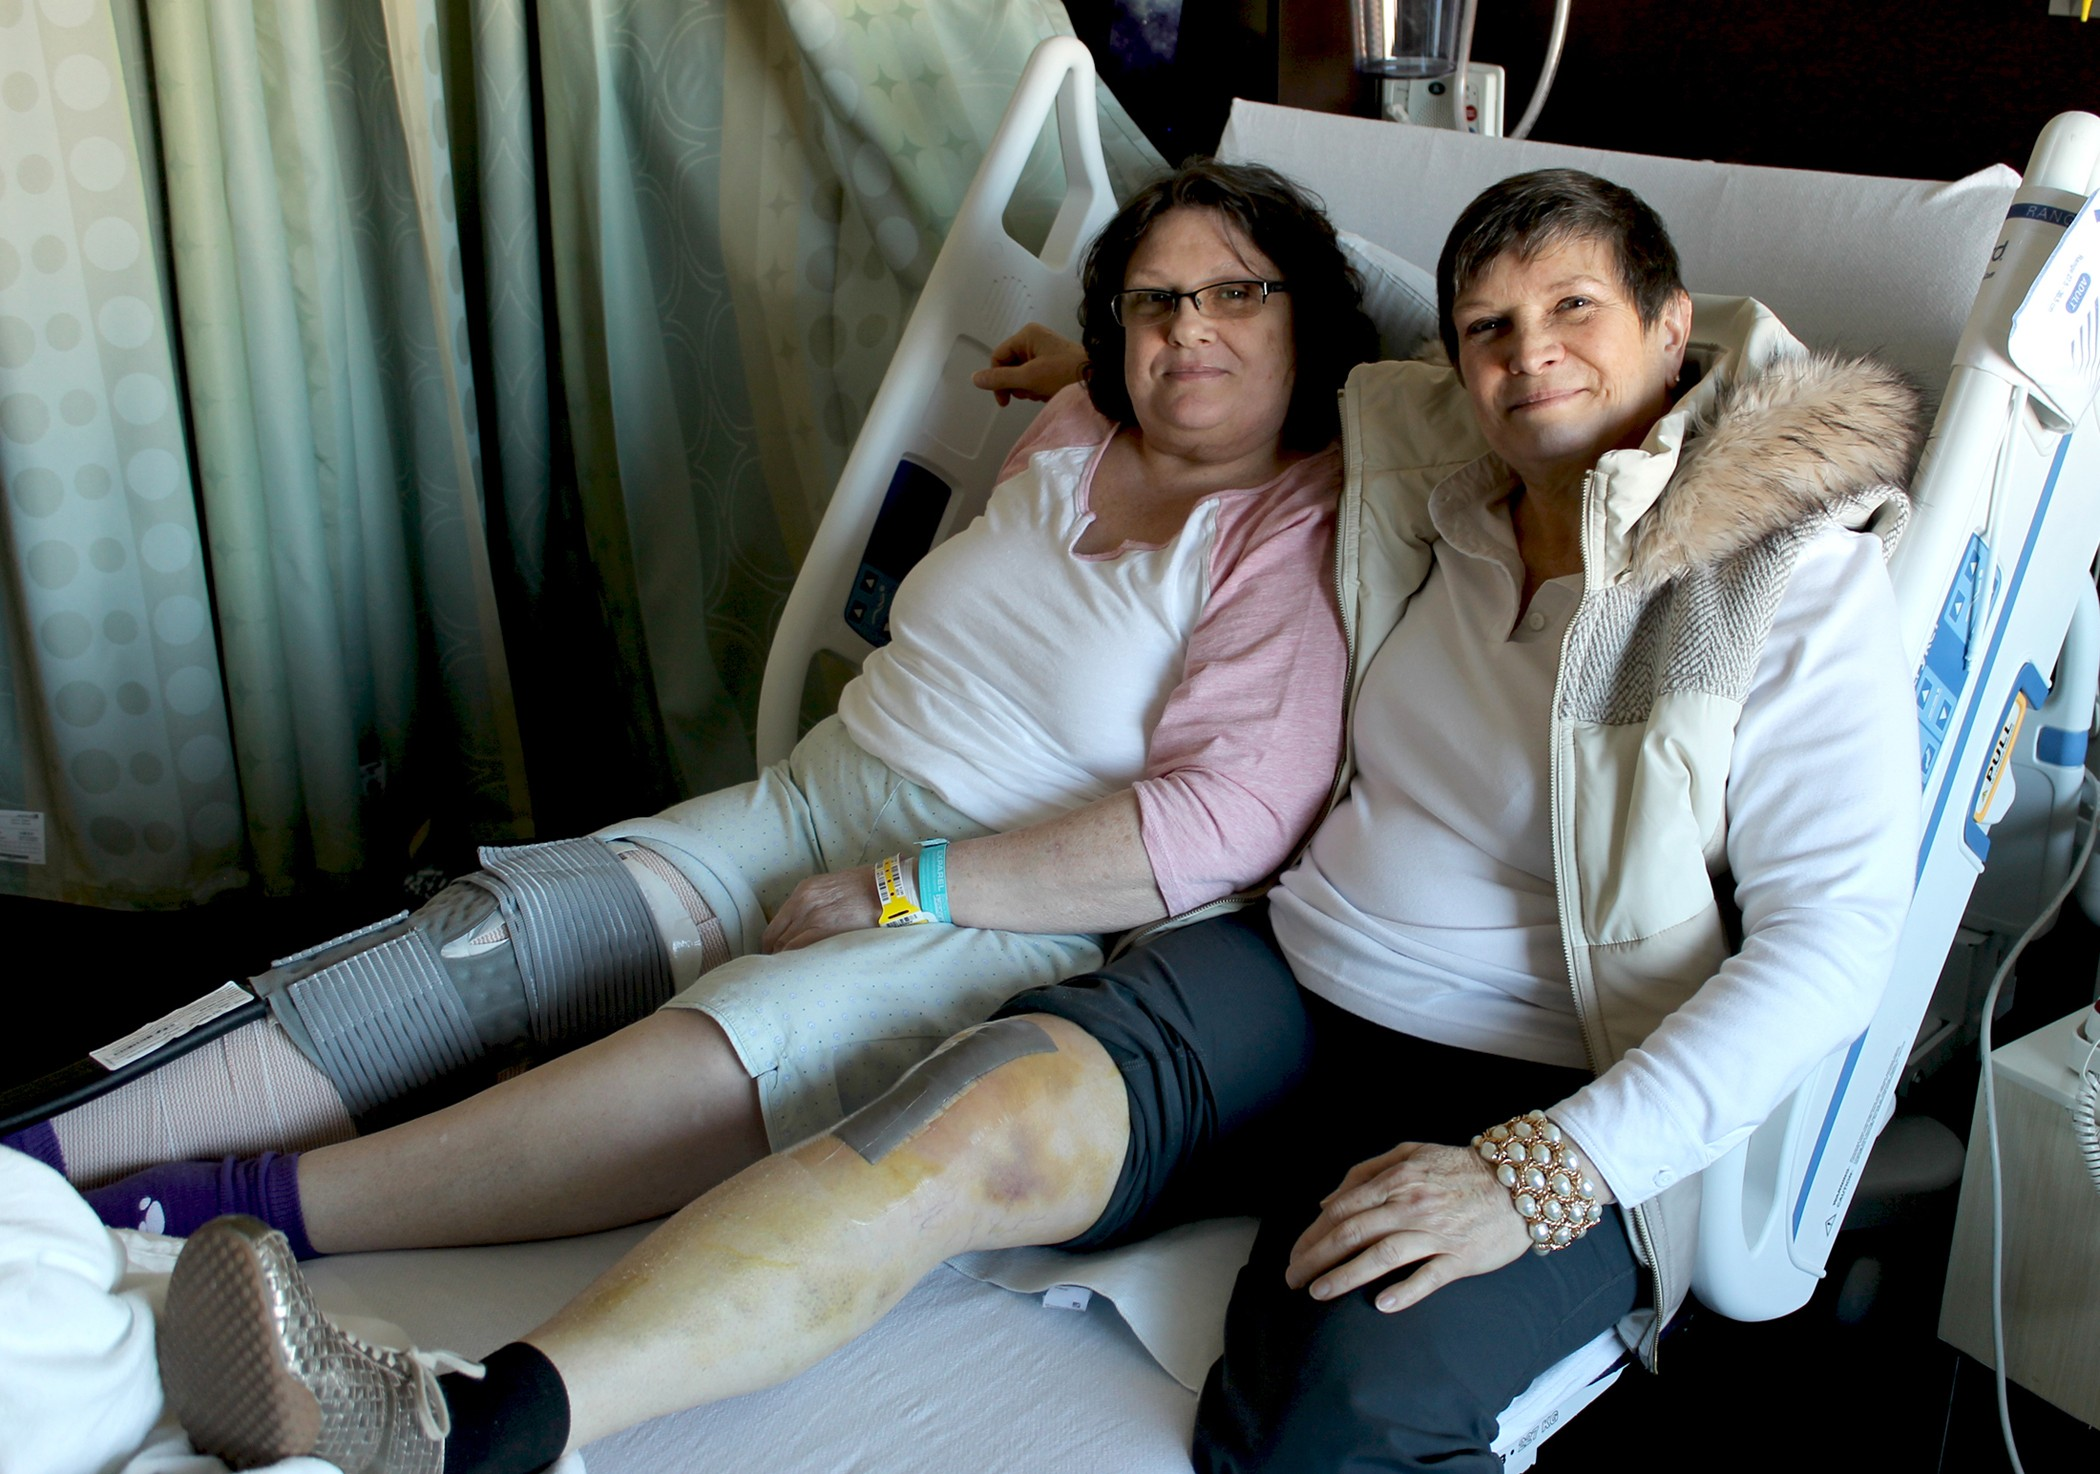 "Sisters Jan Senkbeil and Judy Howell reunited to have knee replacements at Mercy Orthopedic Hospital Springfield. The sisters work for different companies that send their employees to ""Centers of Excellence,"" like Mercy, for joint replacements."